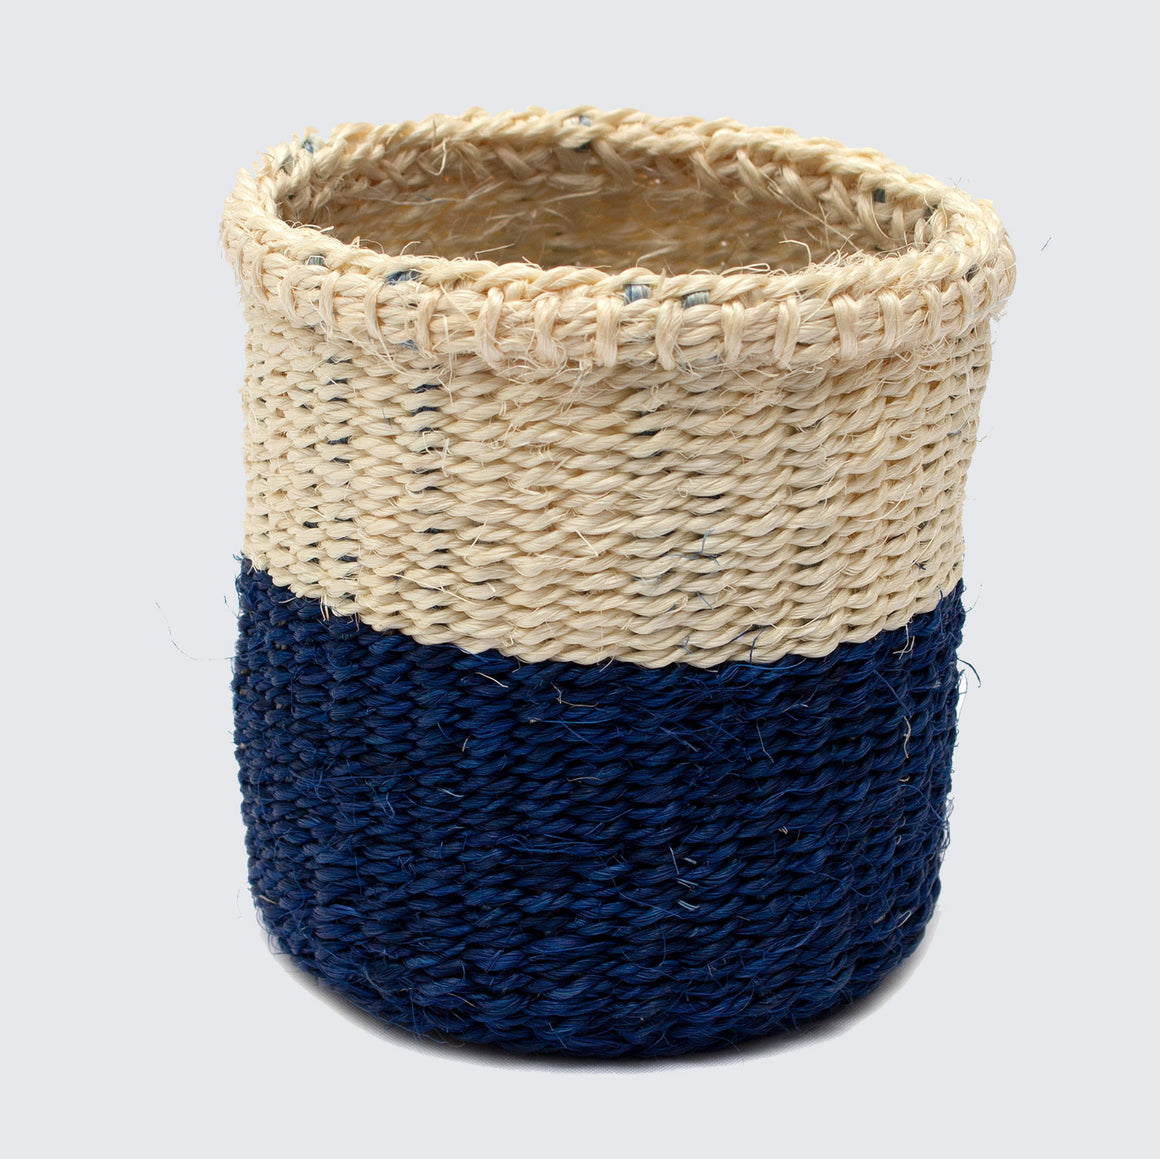 Kenyan Woven Basket 'Small Dipped Royal Blue & Natural'